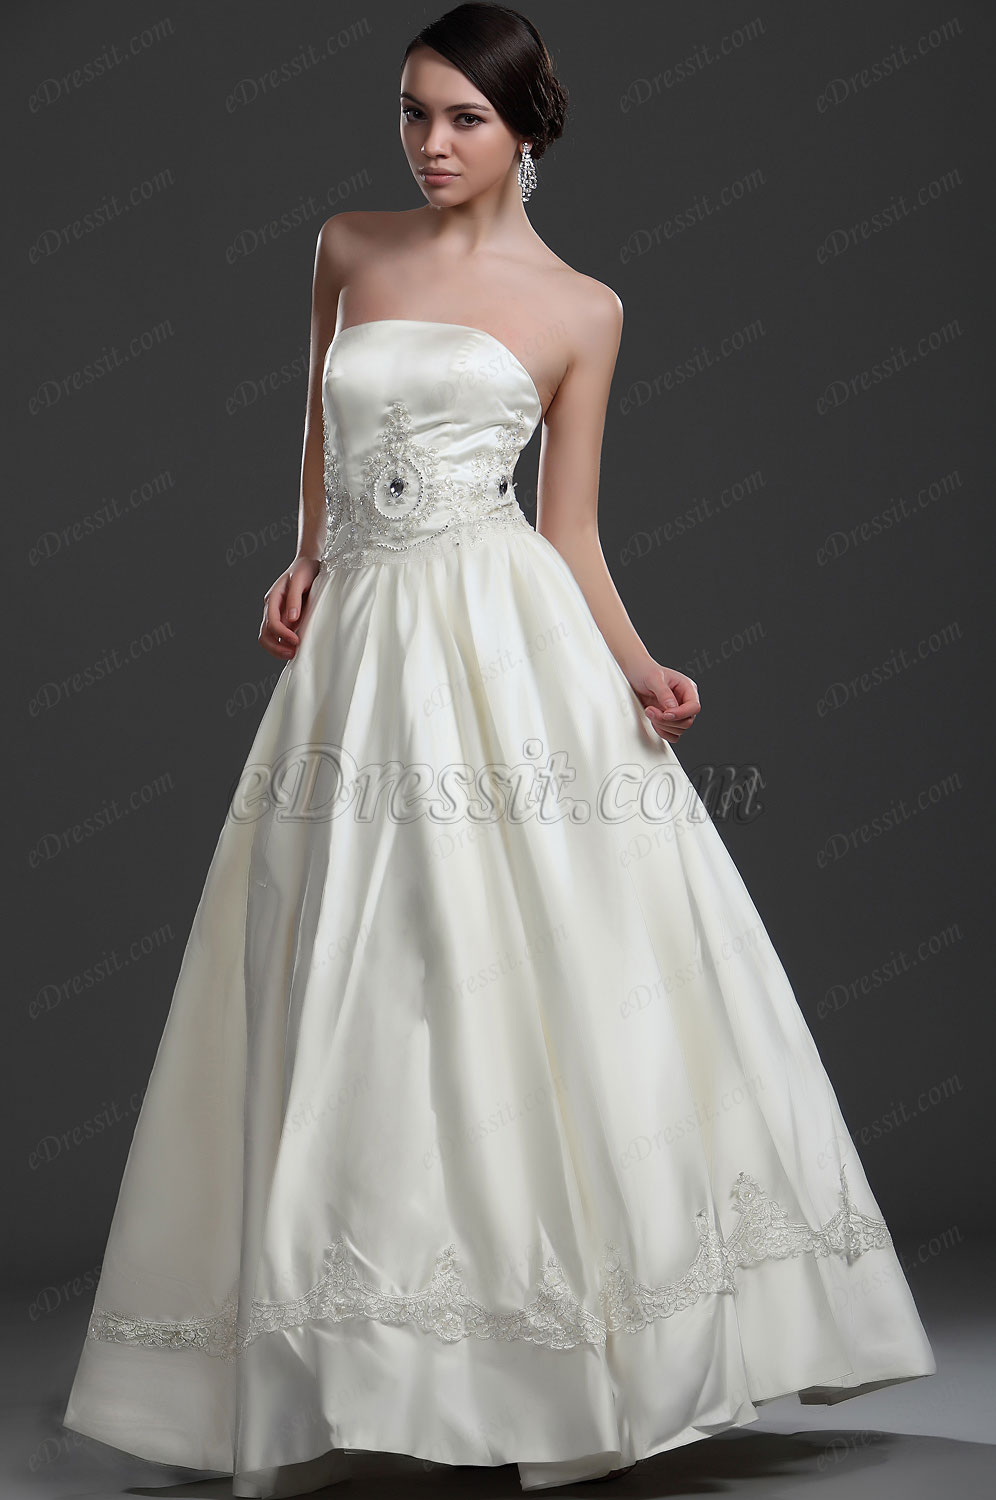 eDressit New Elegant Strapless Wedding Gown (01114313)